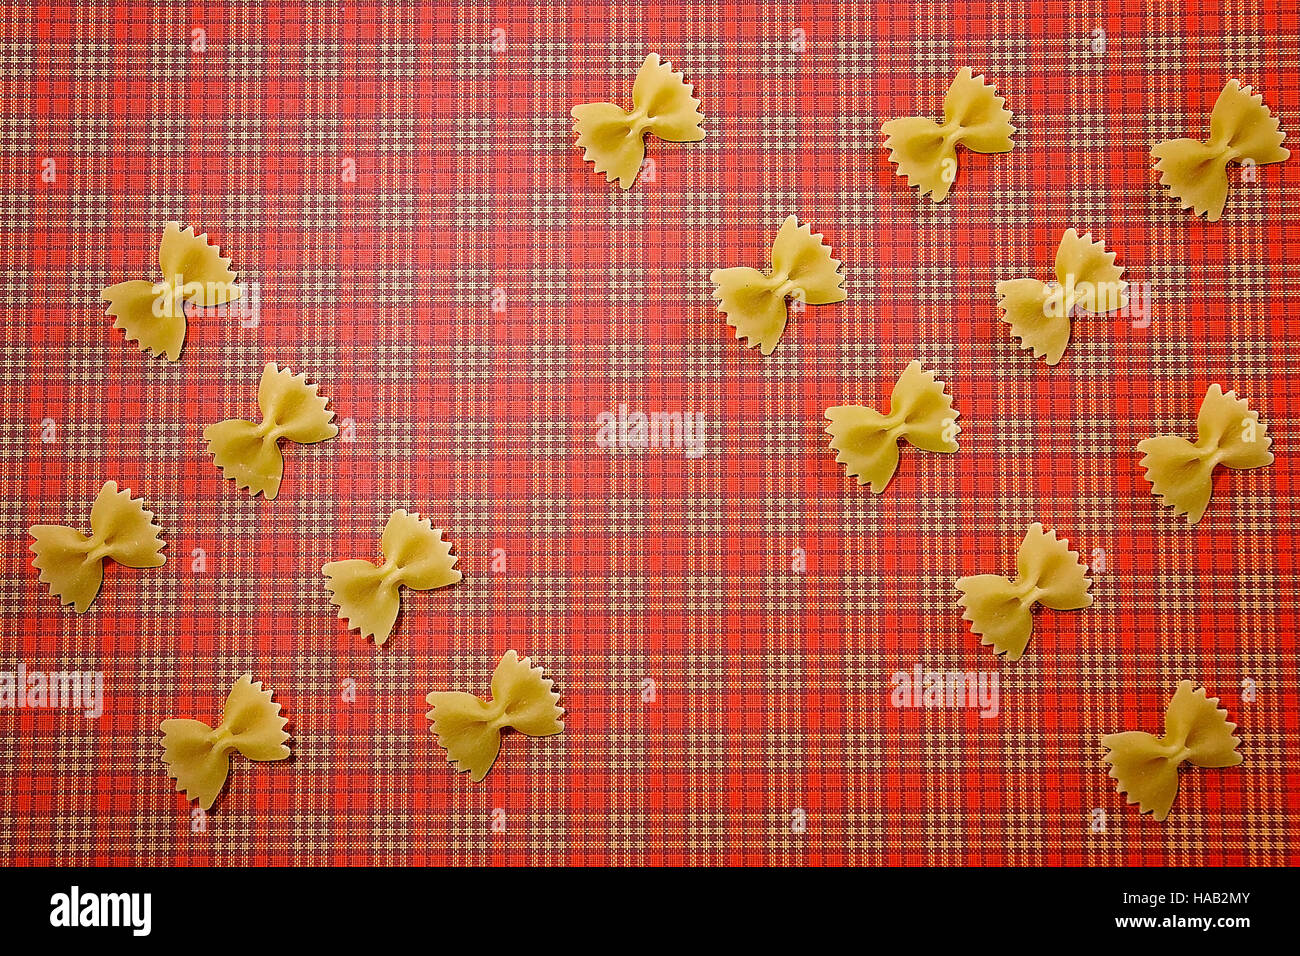 Pasta pattern background. Wholemeal bow tie farfalle on red squared tablecloth. Flat lay. Top view. - Stock Image